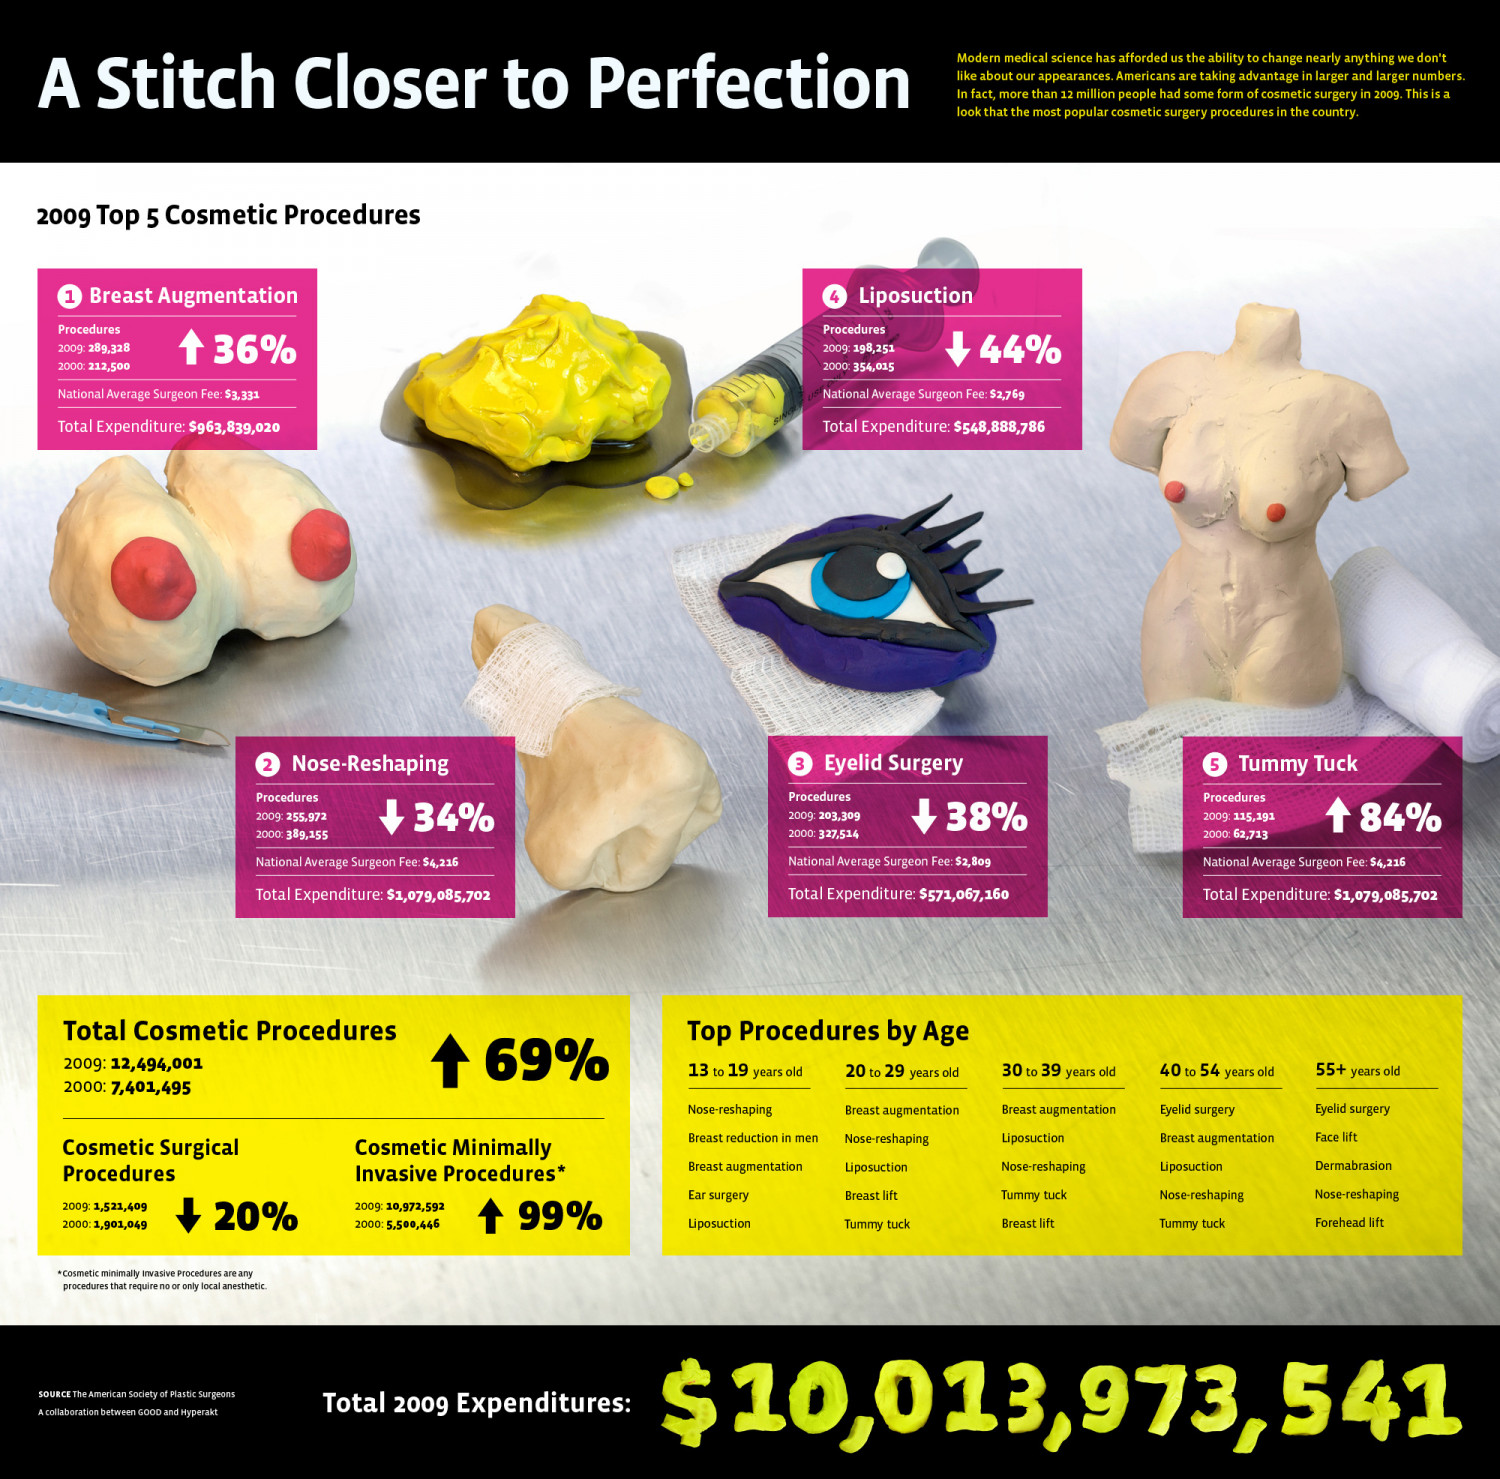 A Stitch Closer to Perfection Infographic